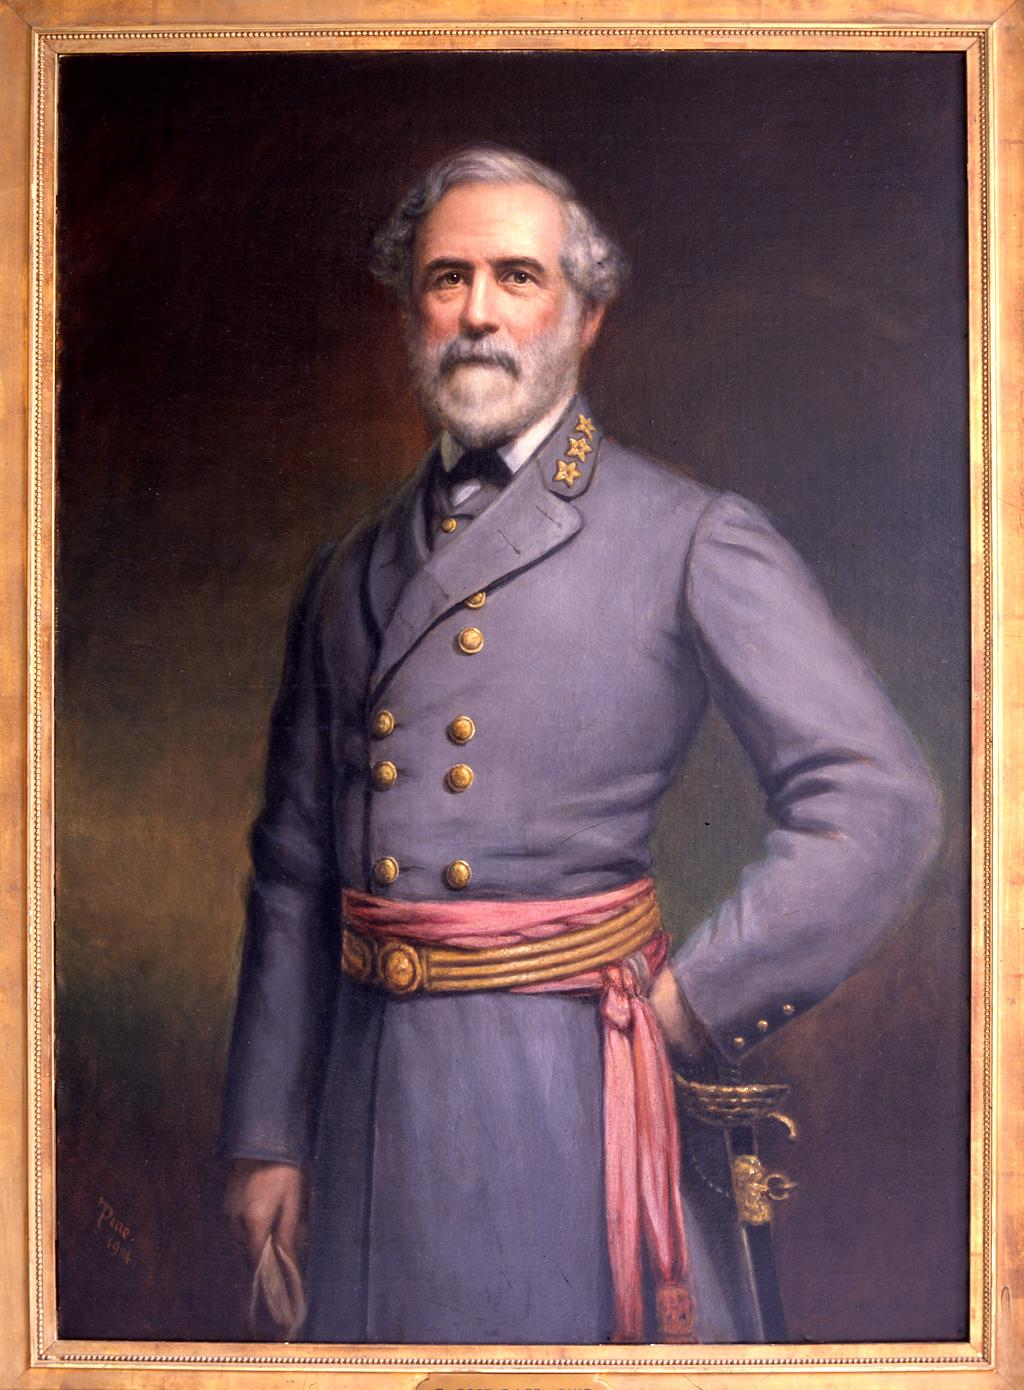 robert-e-lee-by-theodore-pine-1904